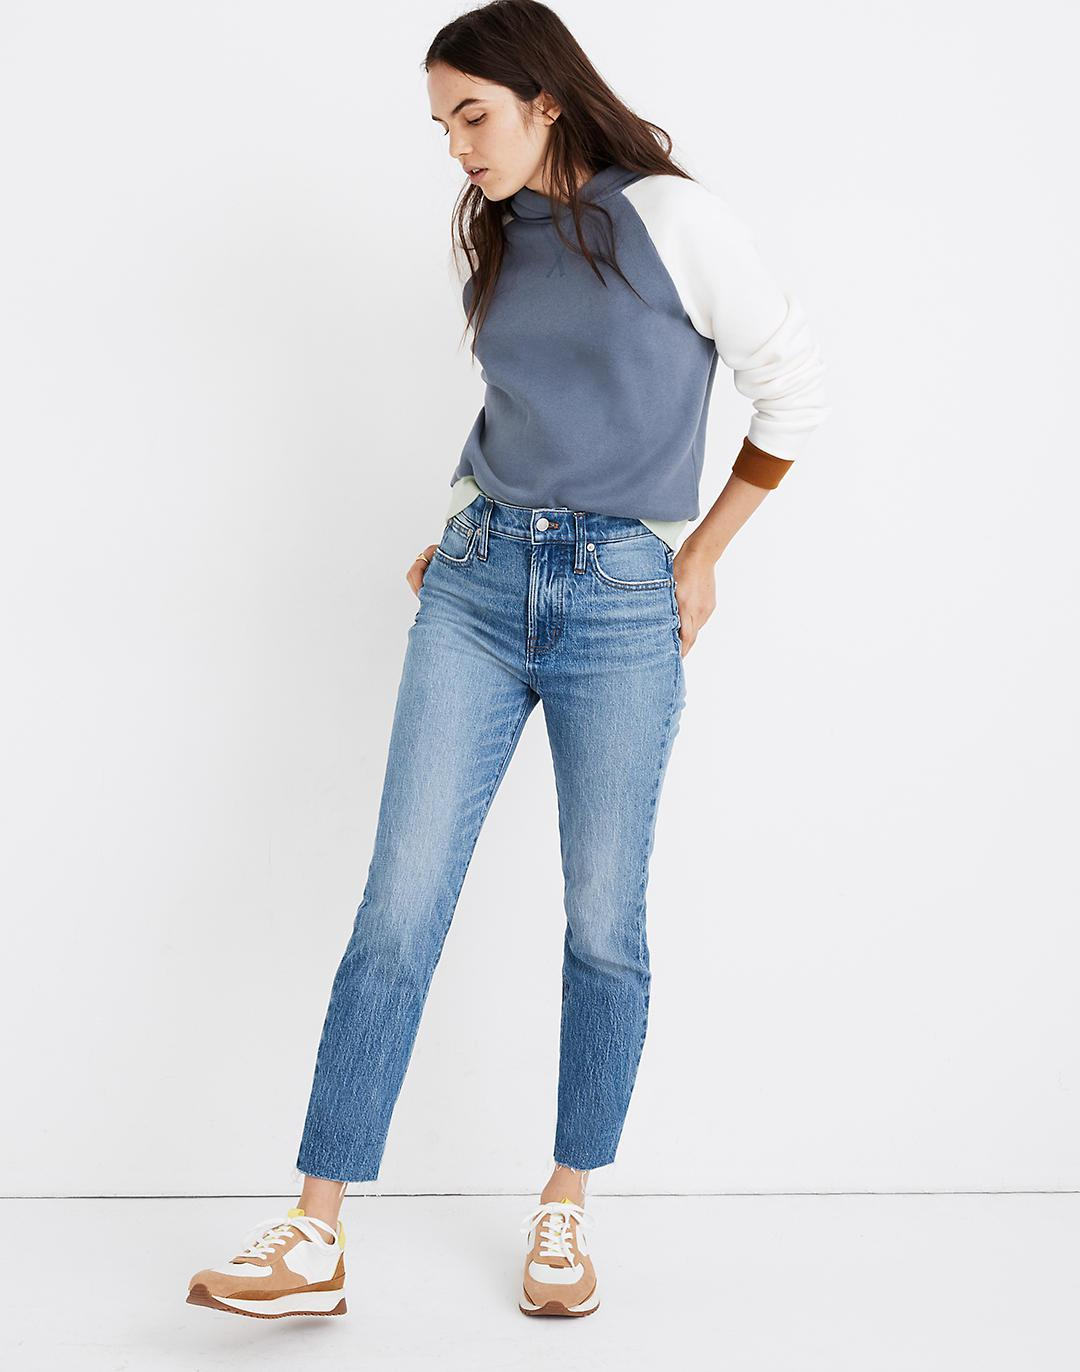 The Petite Perfect Vintage Jean in Enmore Wash: Raw-Hem Edition